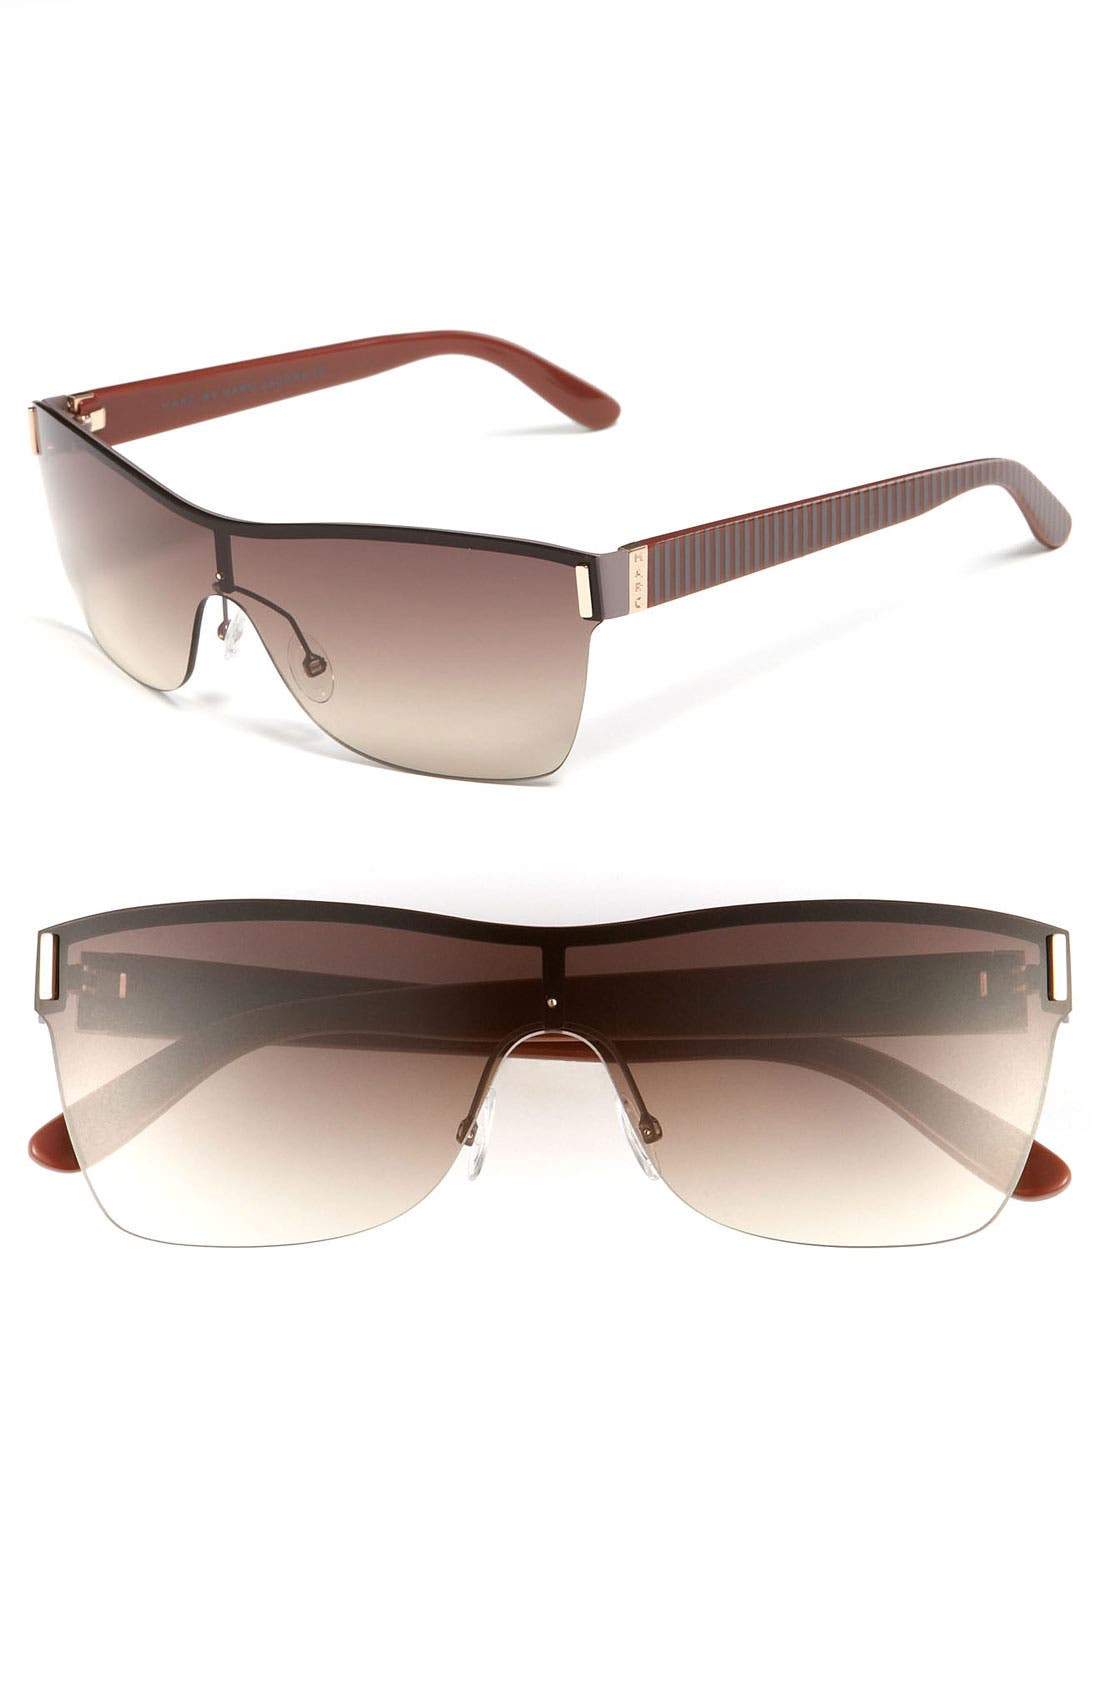 Alternate Image 1 Selected - MARC BY MARC JACOBS Rimless Shield Sunglasses